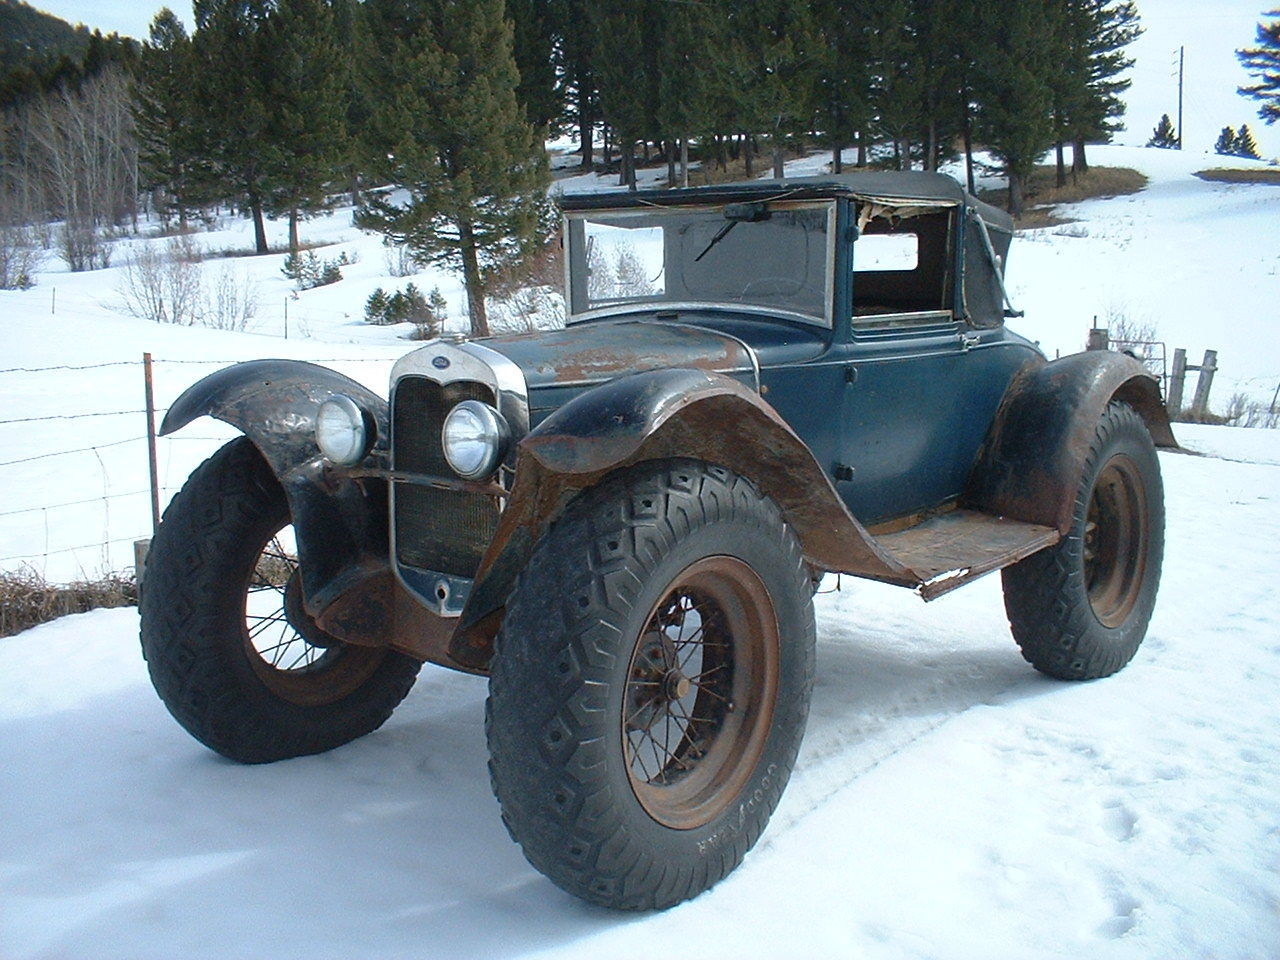 This 1930 Ford Model A Rural Mail Car Is For Sale, Has Amazing History, And Even Video Of It in Action